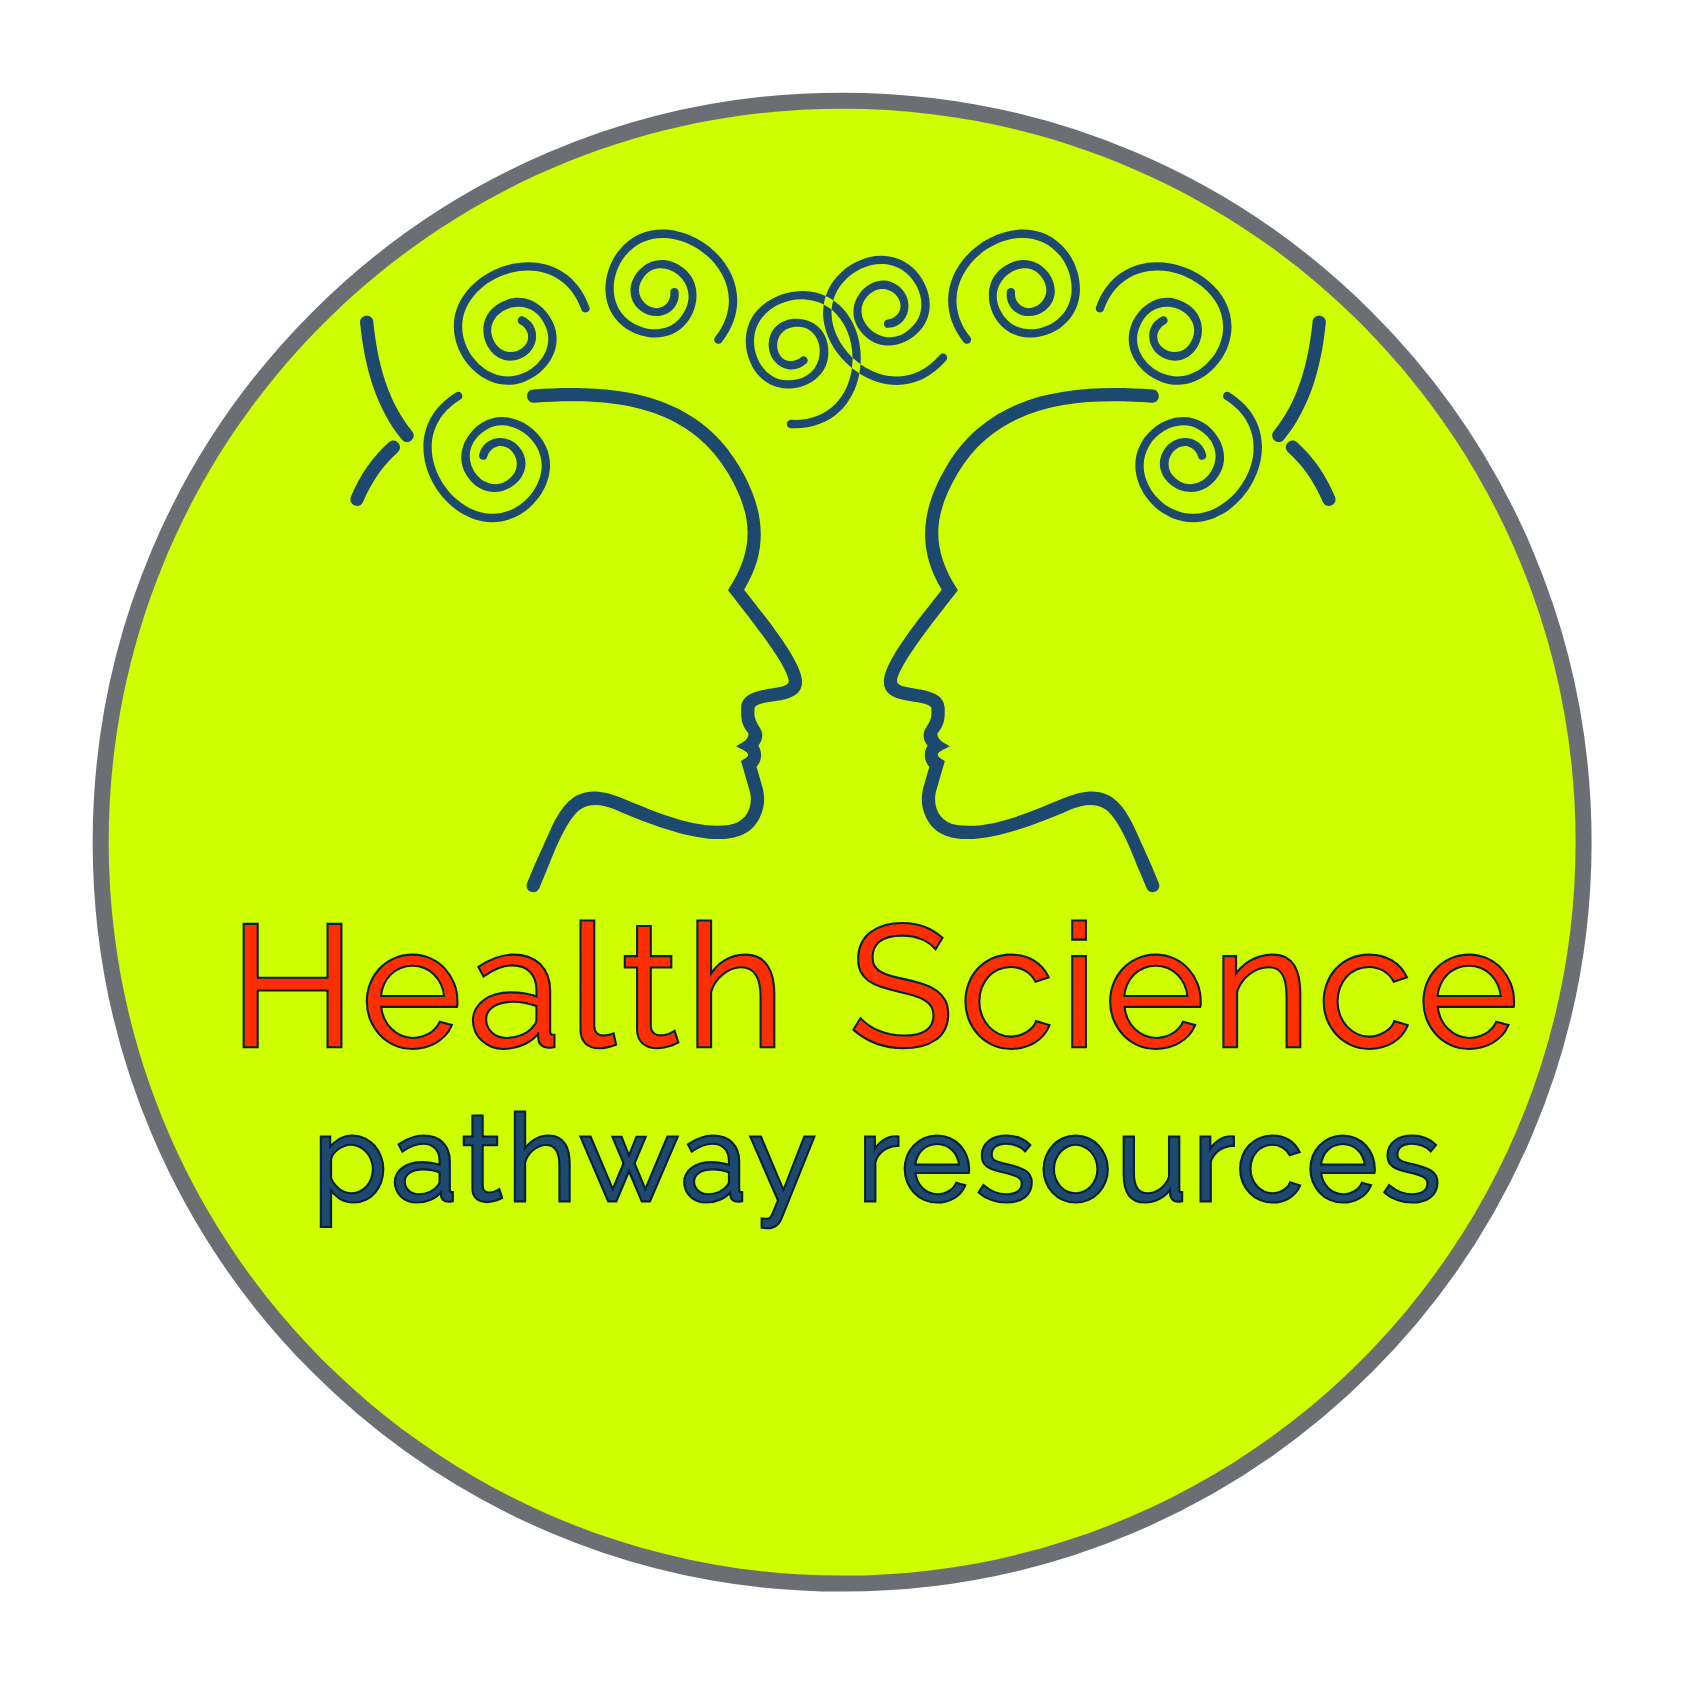 health-science-pathway-resources-logo.png